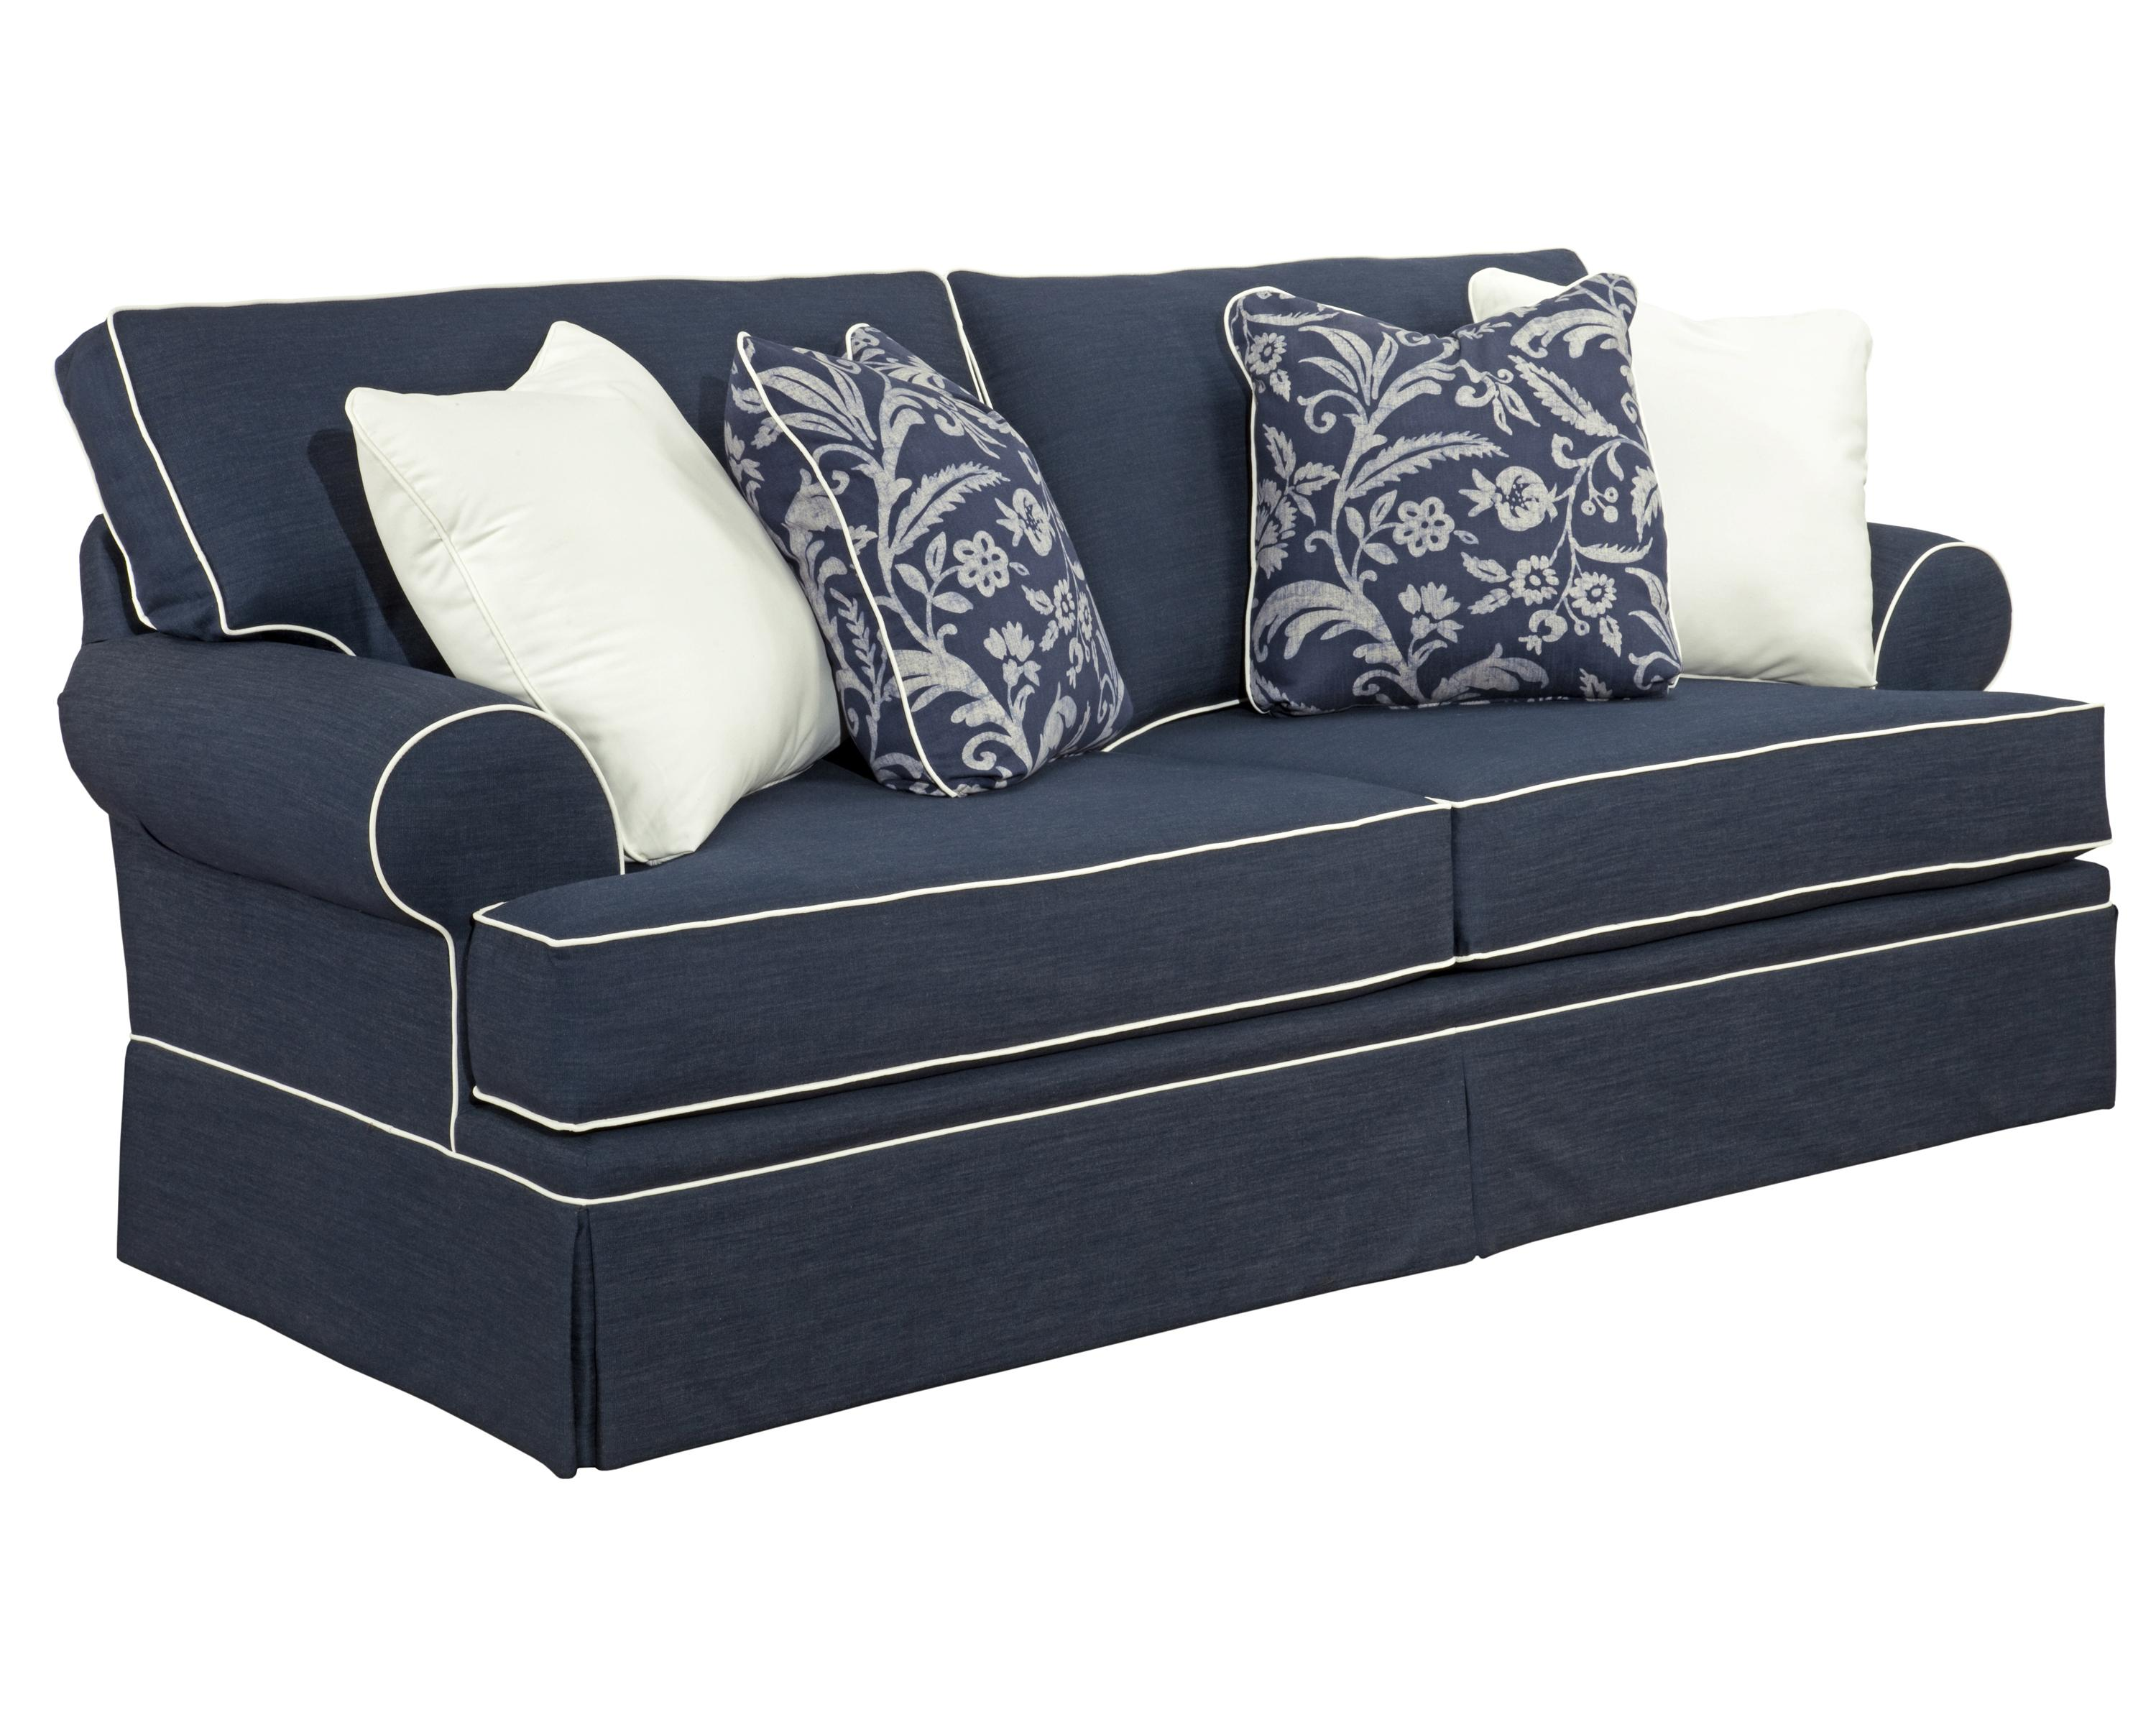 Broyhill Furniture Emily Casual Style Sofa - Item Number: 6262-3